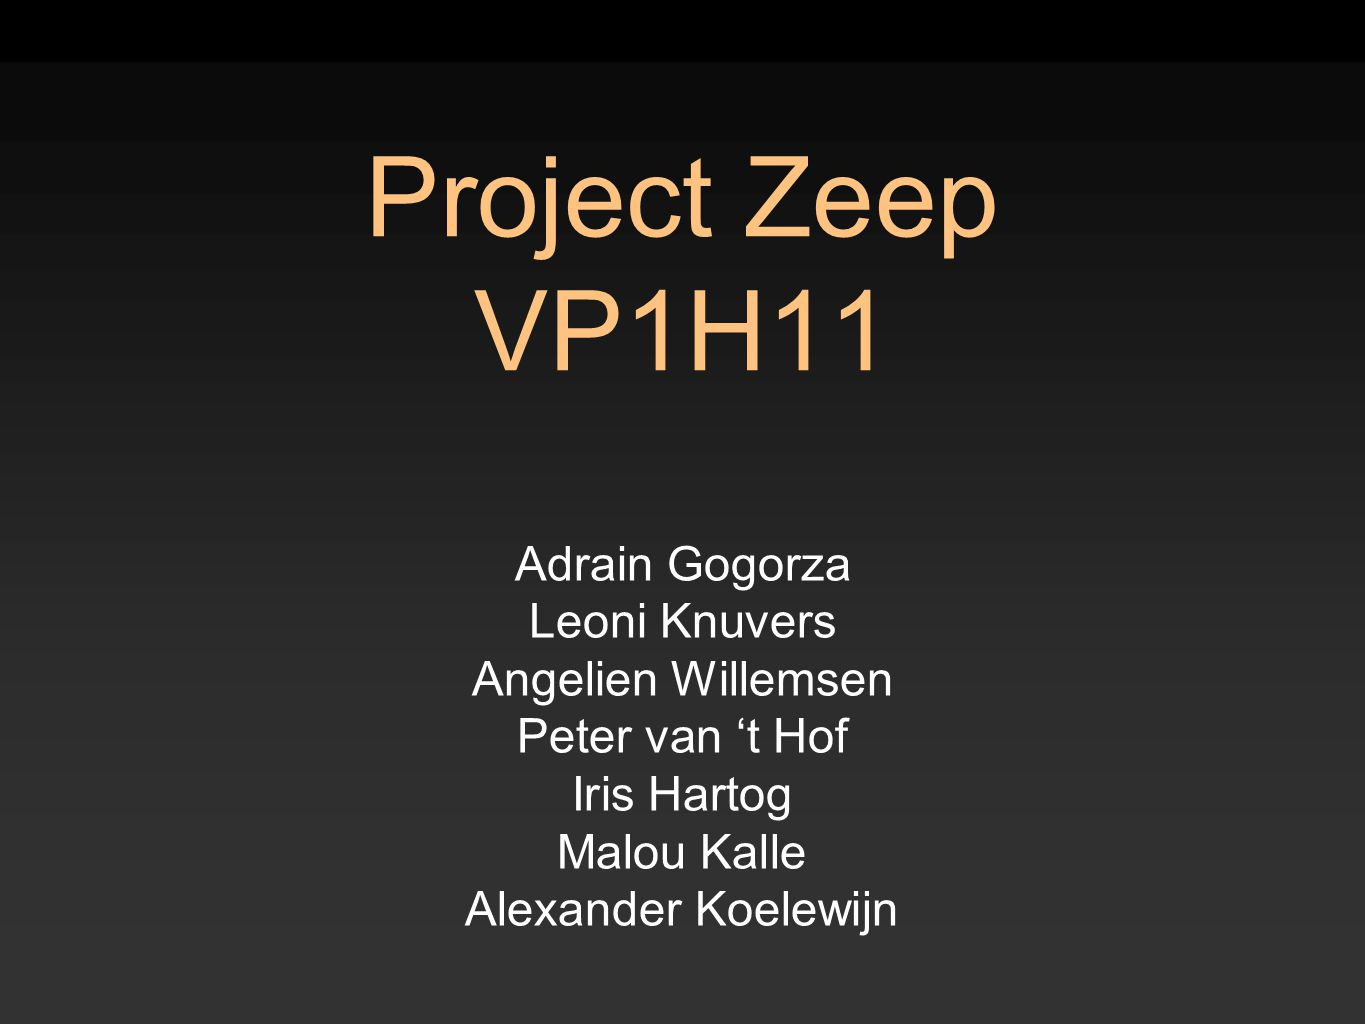 Project Zeep VP1H11 Adrain Gogorza Leoni Knuvers Angelien Willemsen